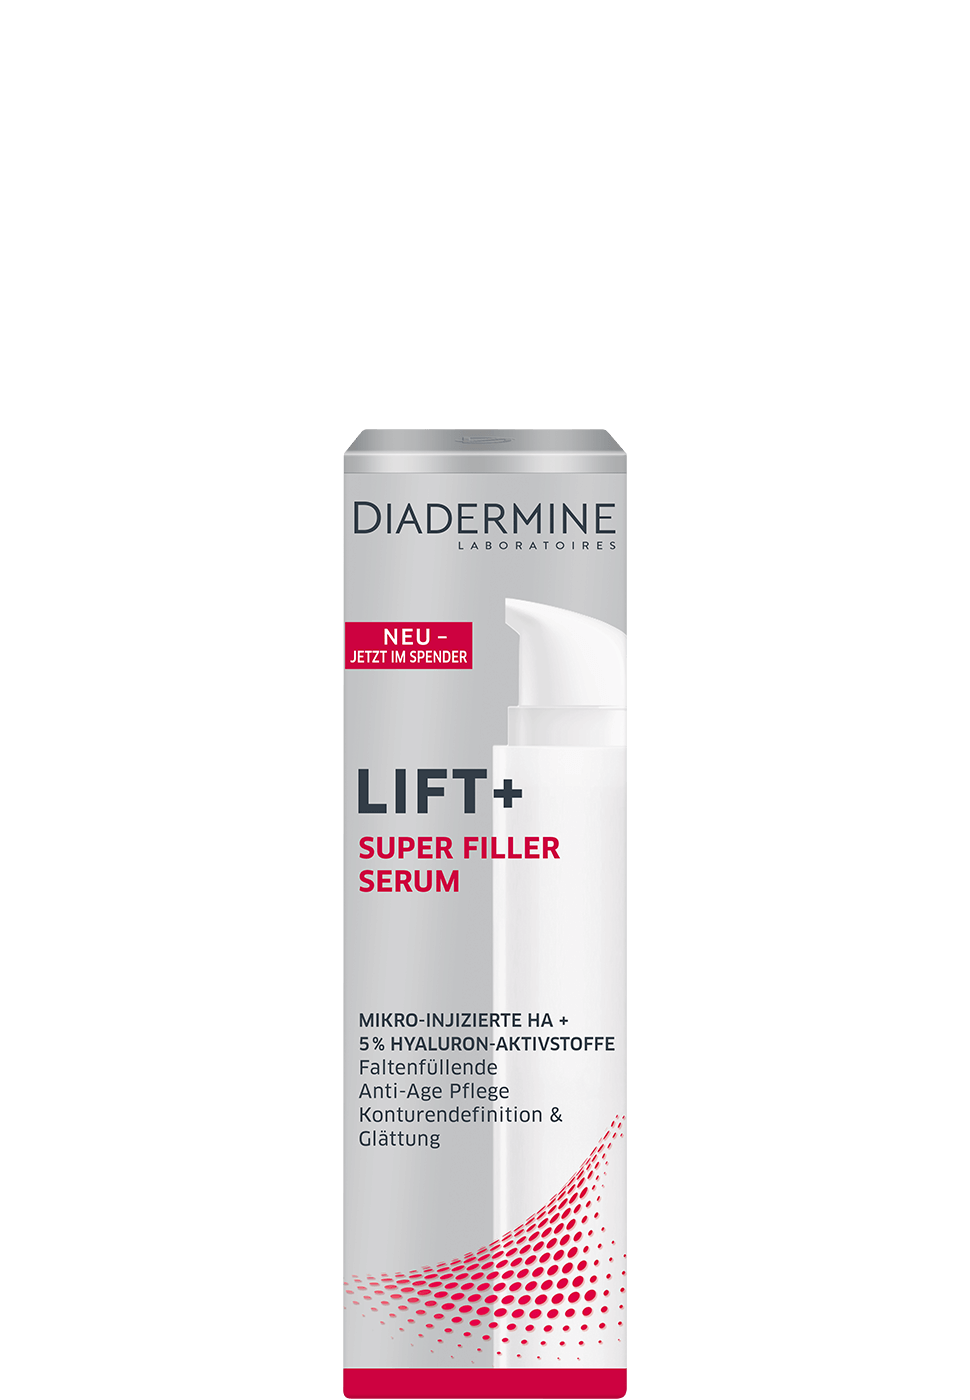 diadermine_at_lift_plus_super_filler_super_serum_970x1400